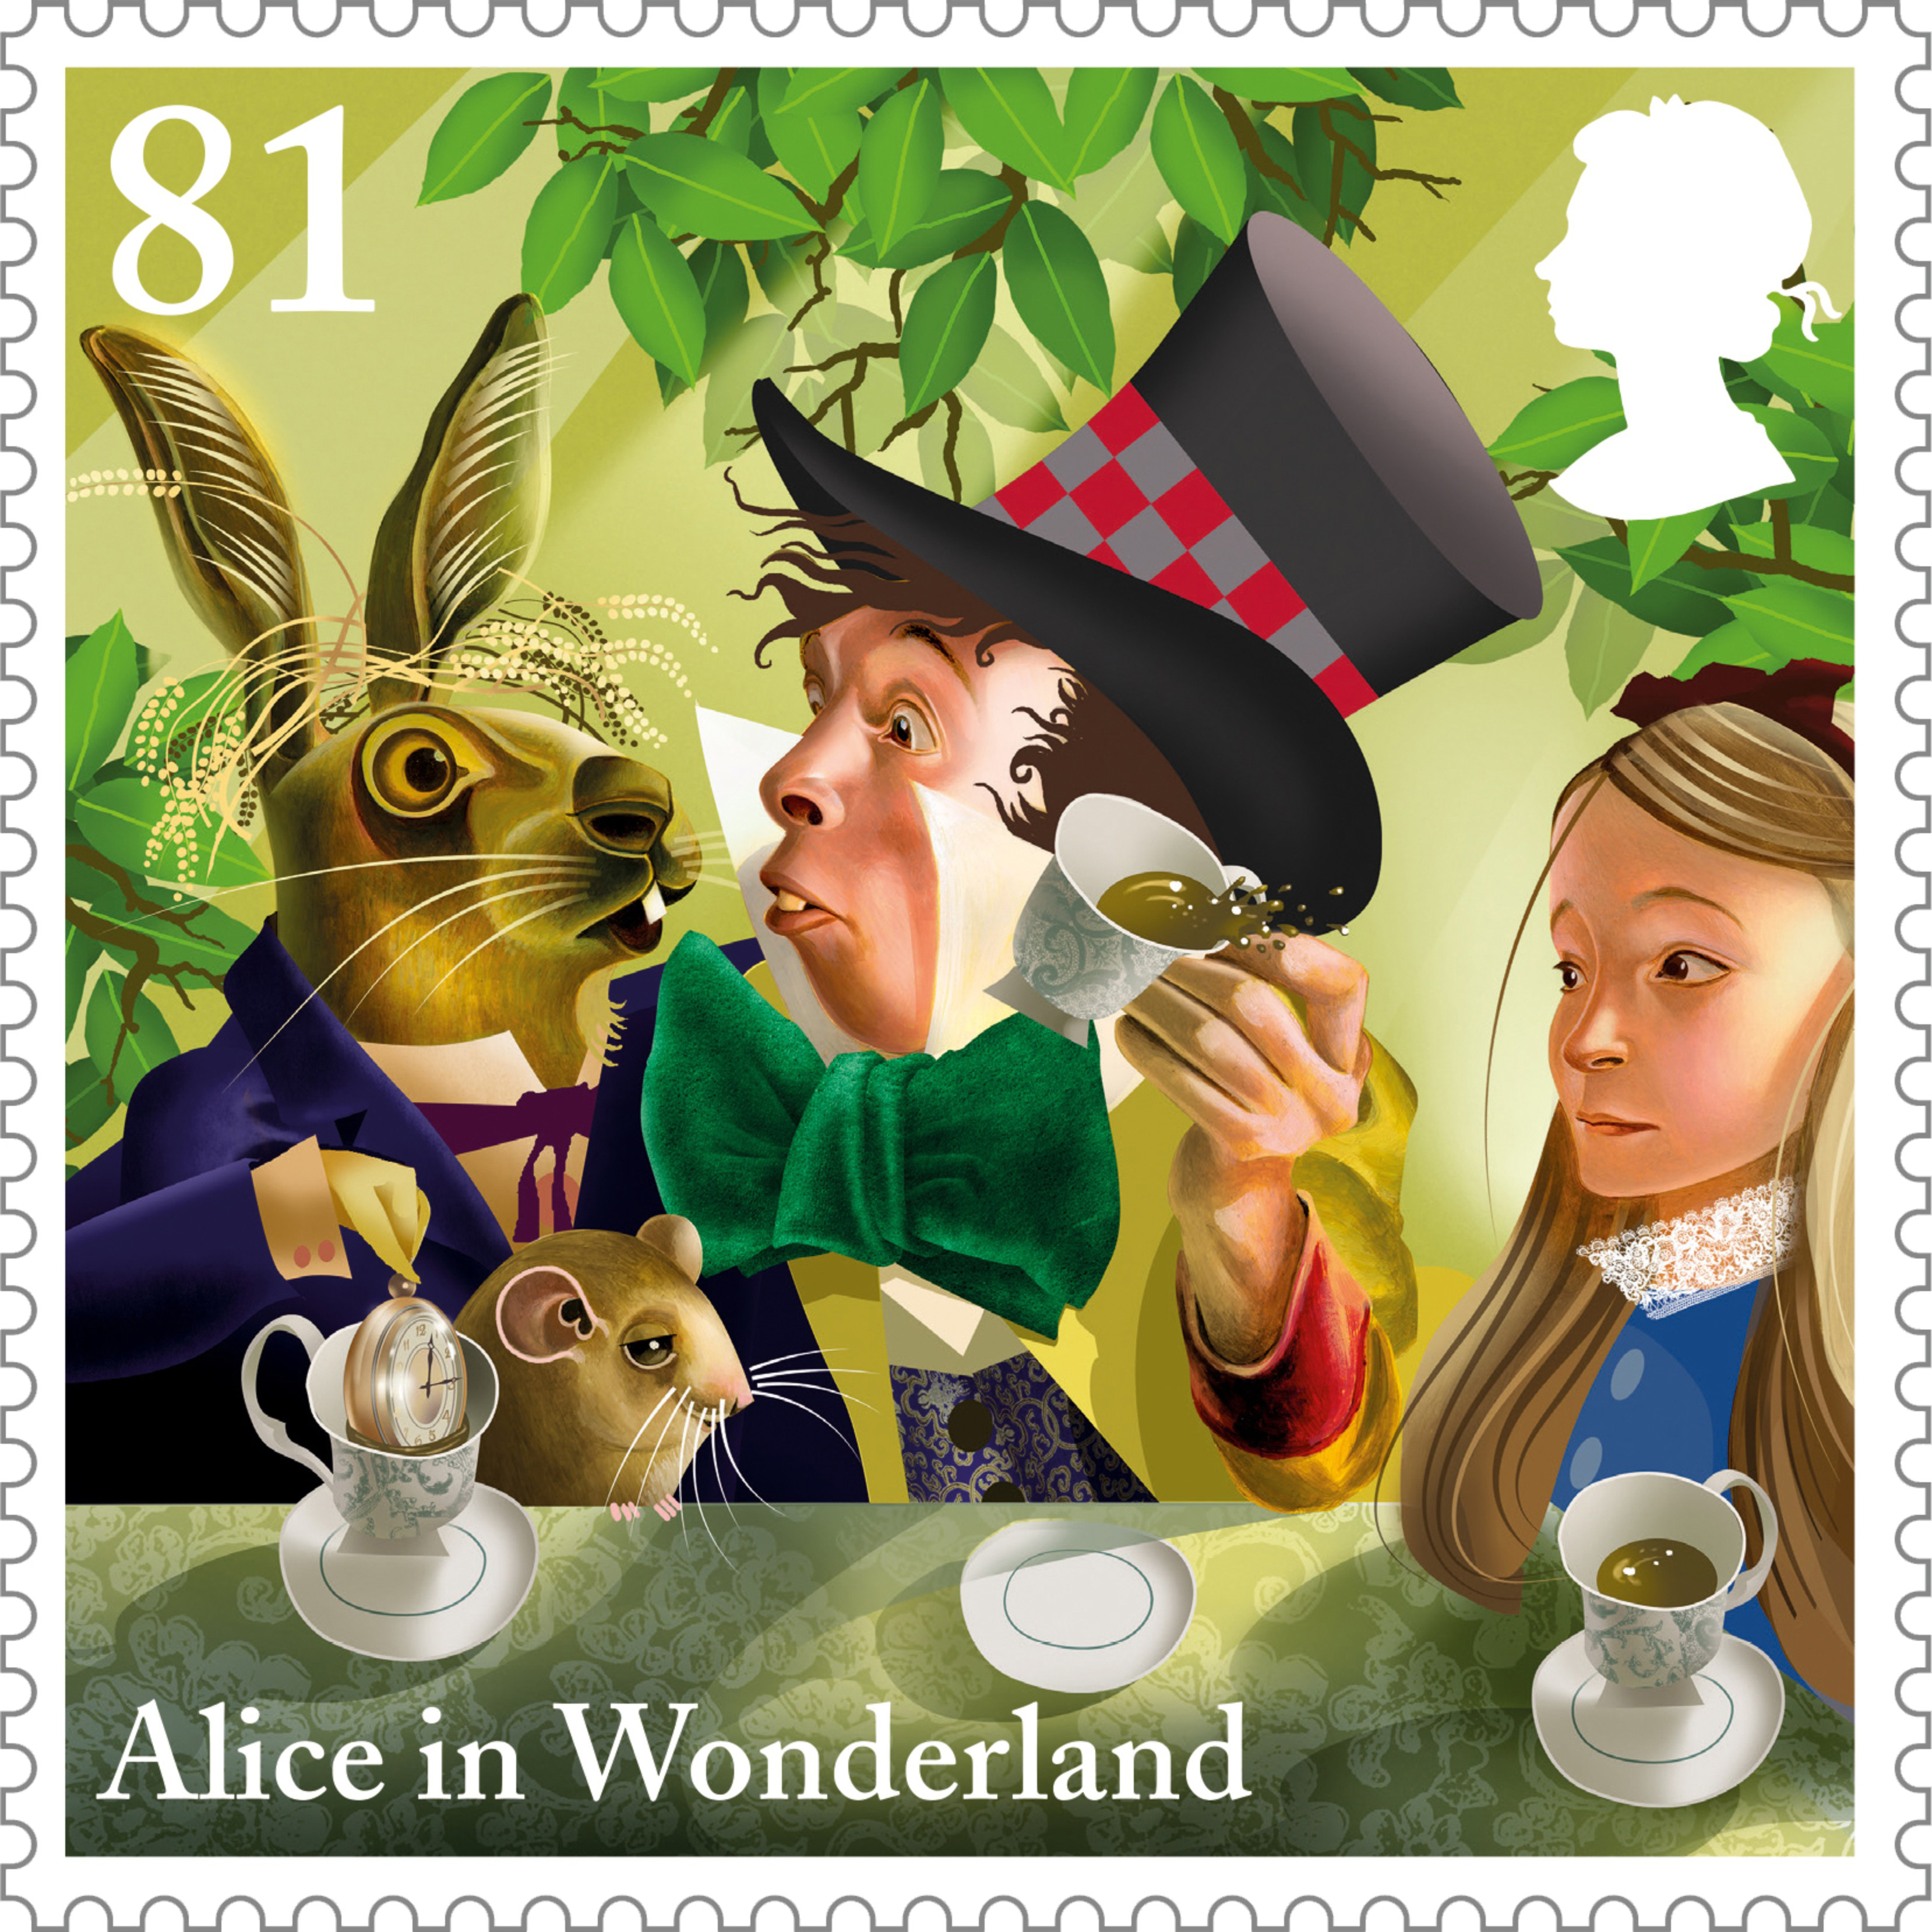 The Mad Hatter's Tea Party from Alice in Wonderland on a 81 pence stamp.